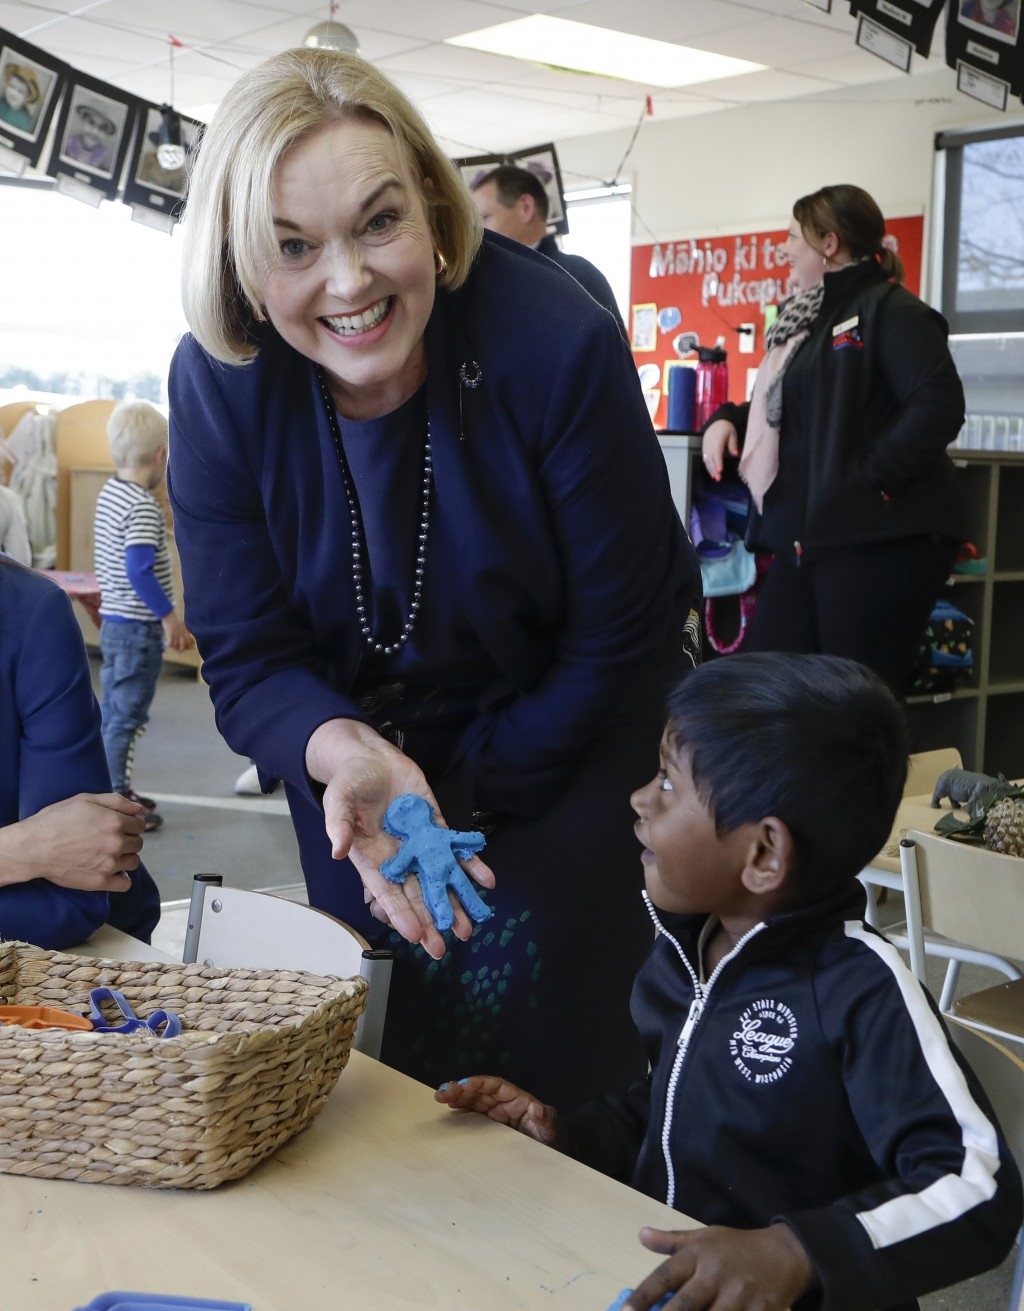 FILE - In this July 30, 2020, file photo, leader of New Zealand opposition National Party Judith Collins reacts with a young child while campaigning a...